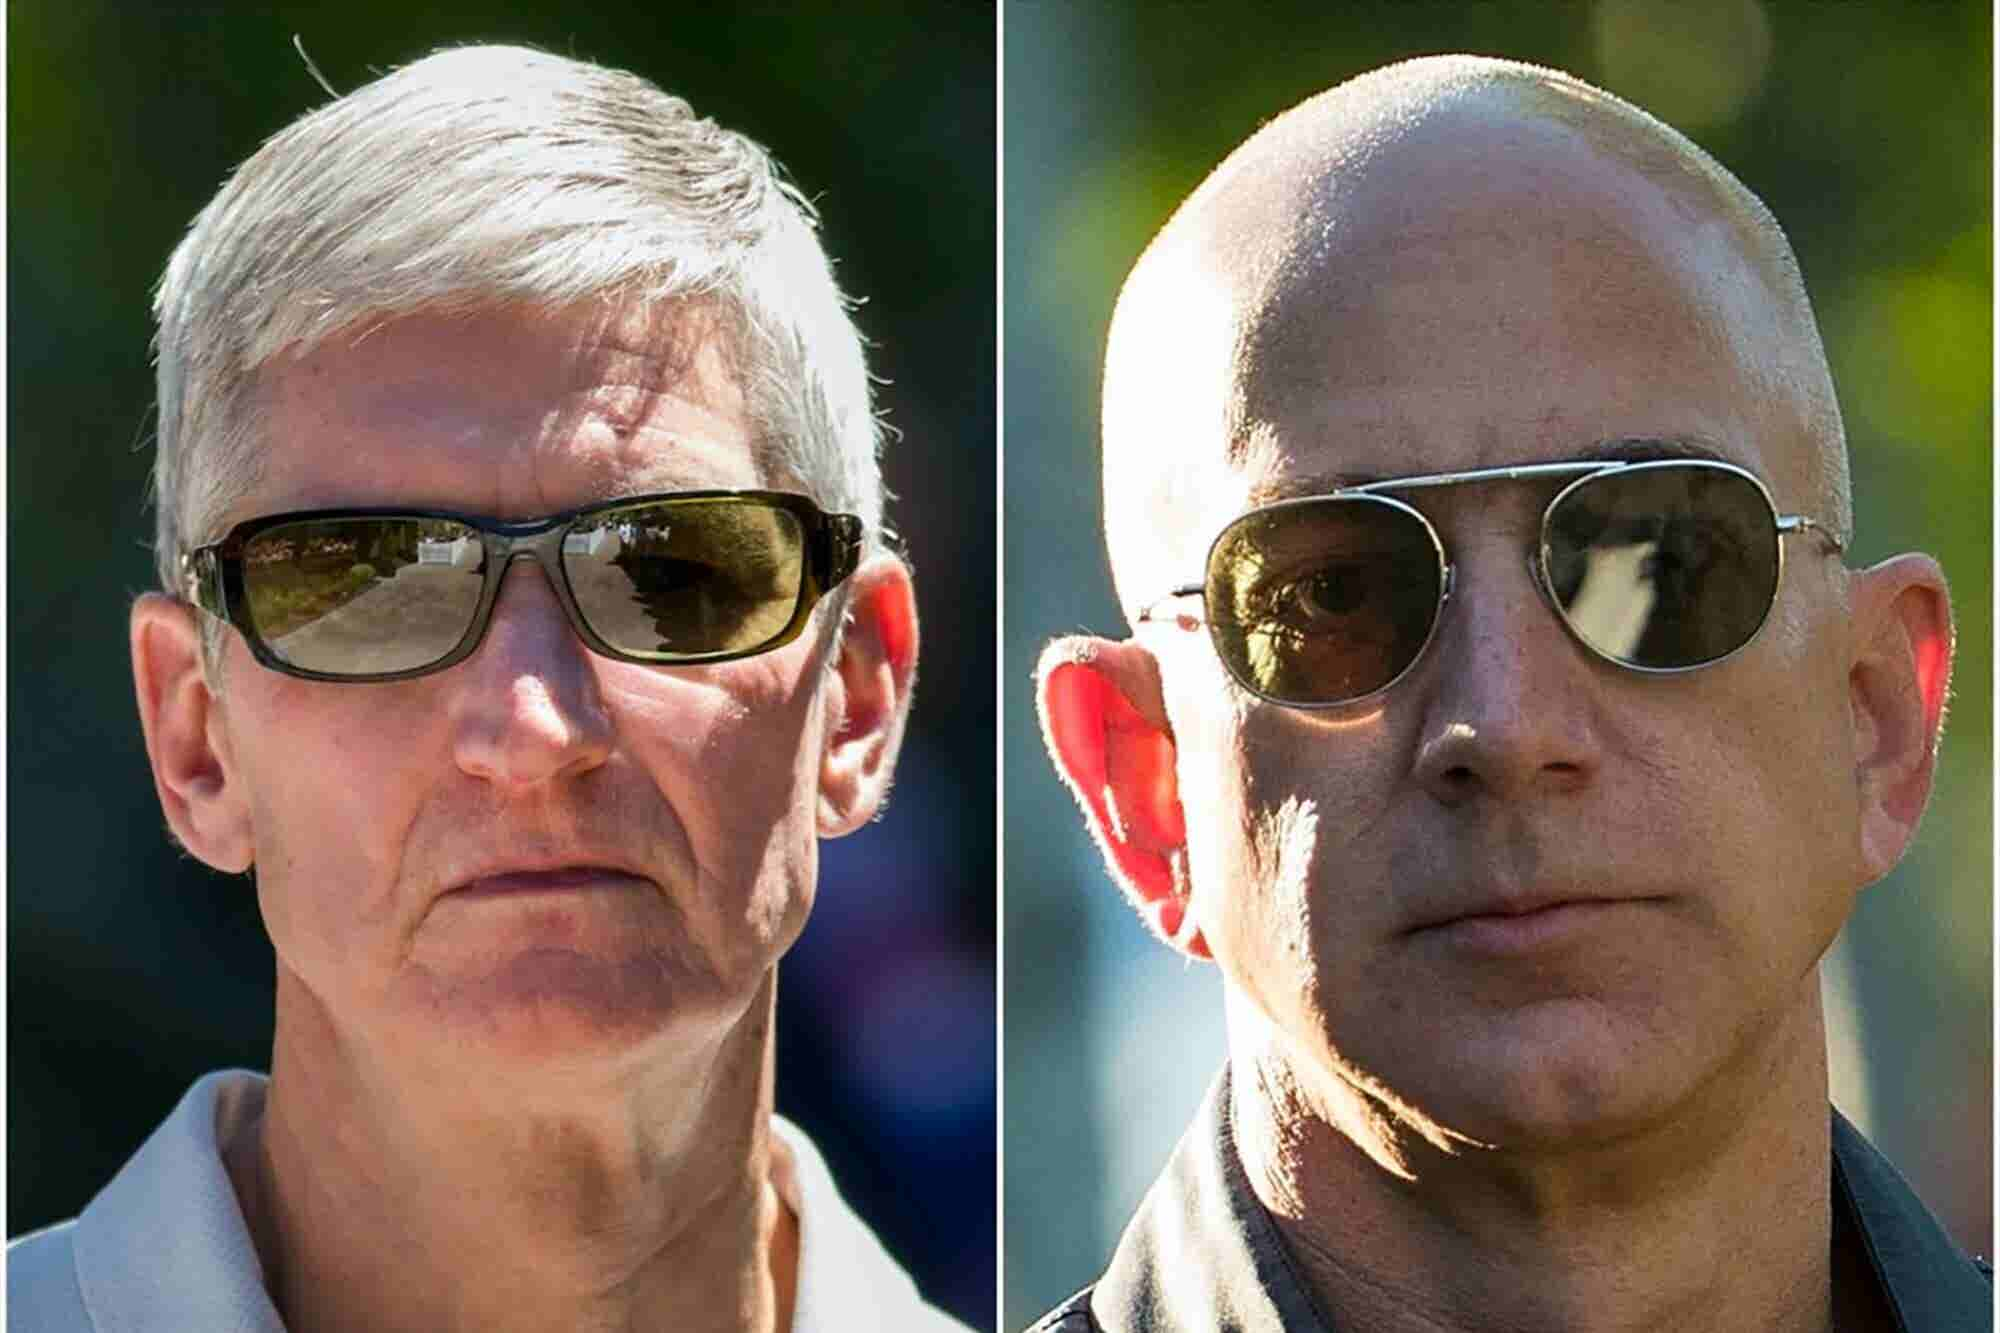 Apple Threw Shade on Amazon With the Stealthy Selection of Its Very Own HQ2